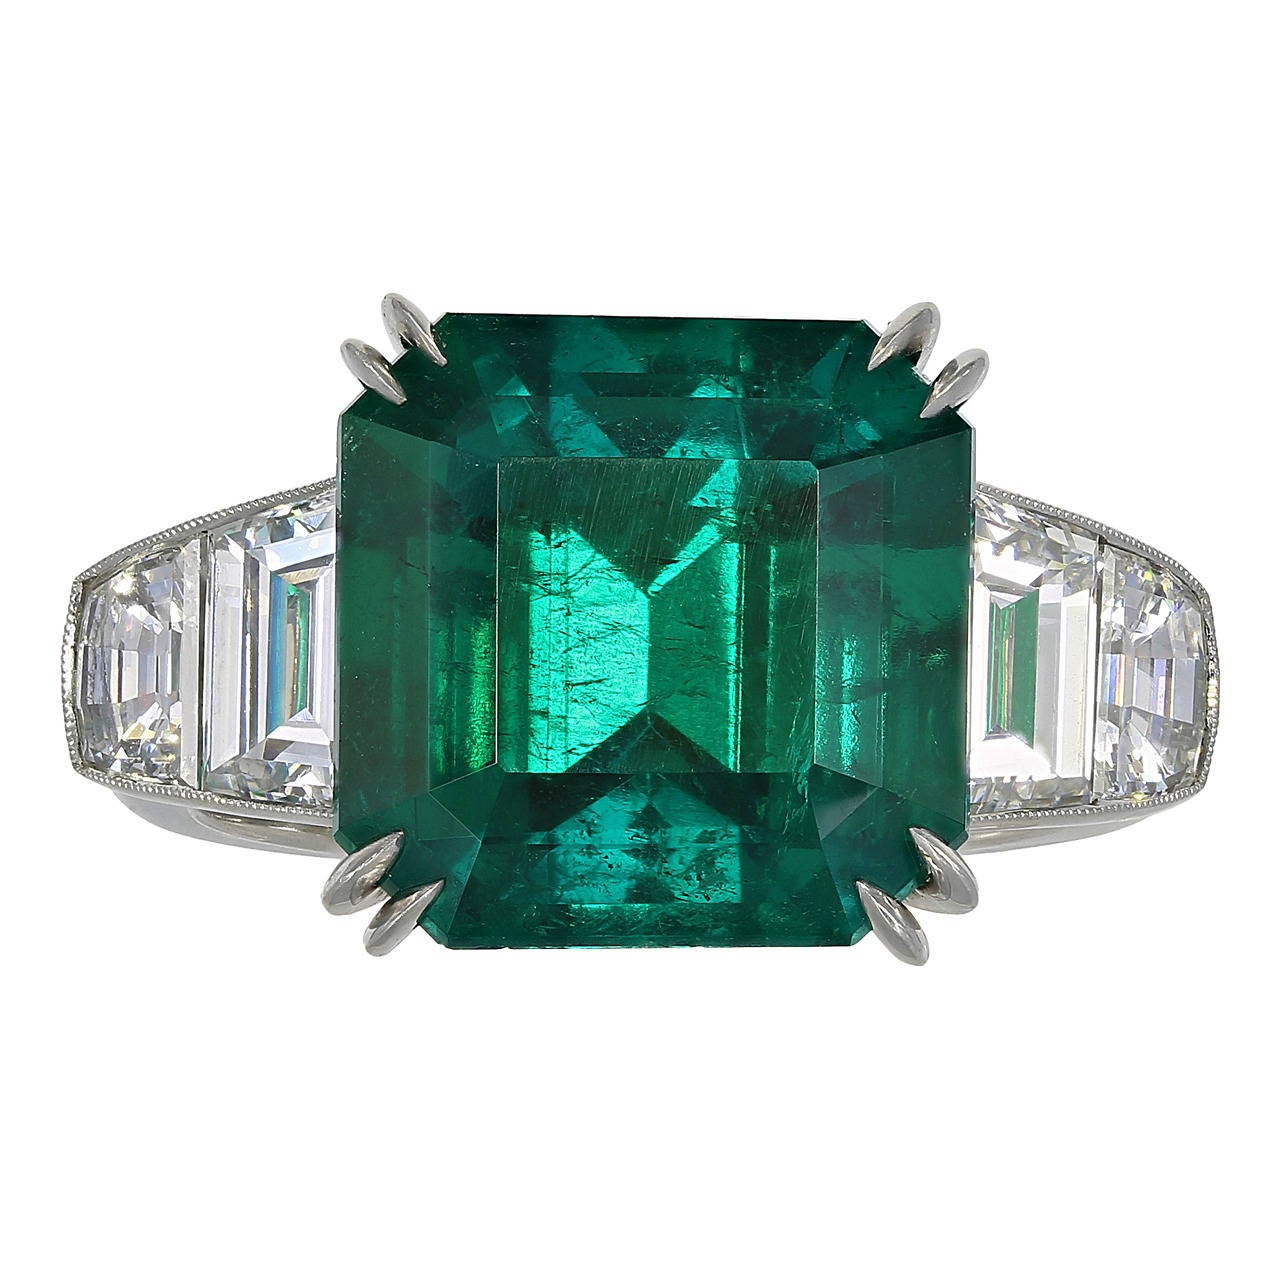 7.28 Carat Colombian Emerald Diamond Ring For Sale